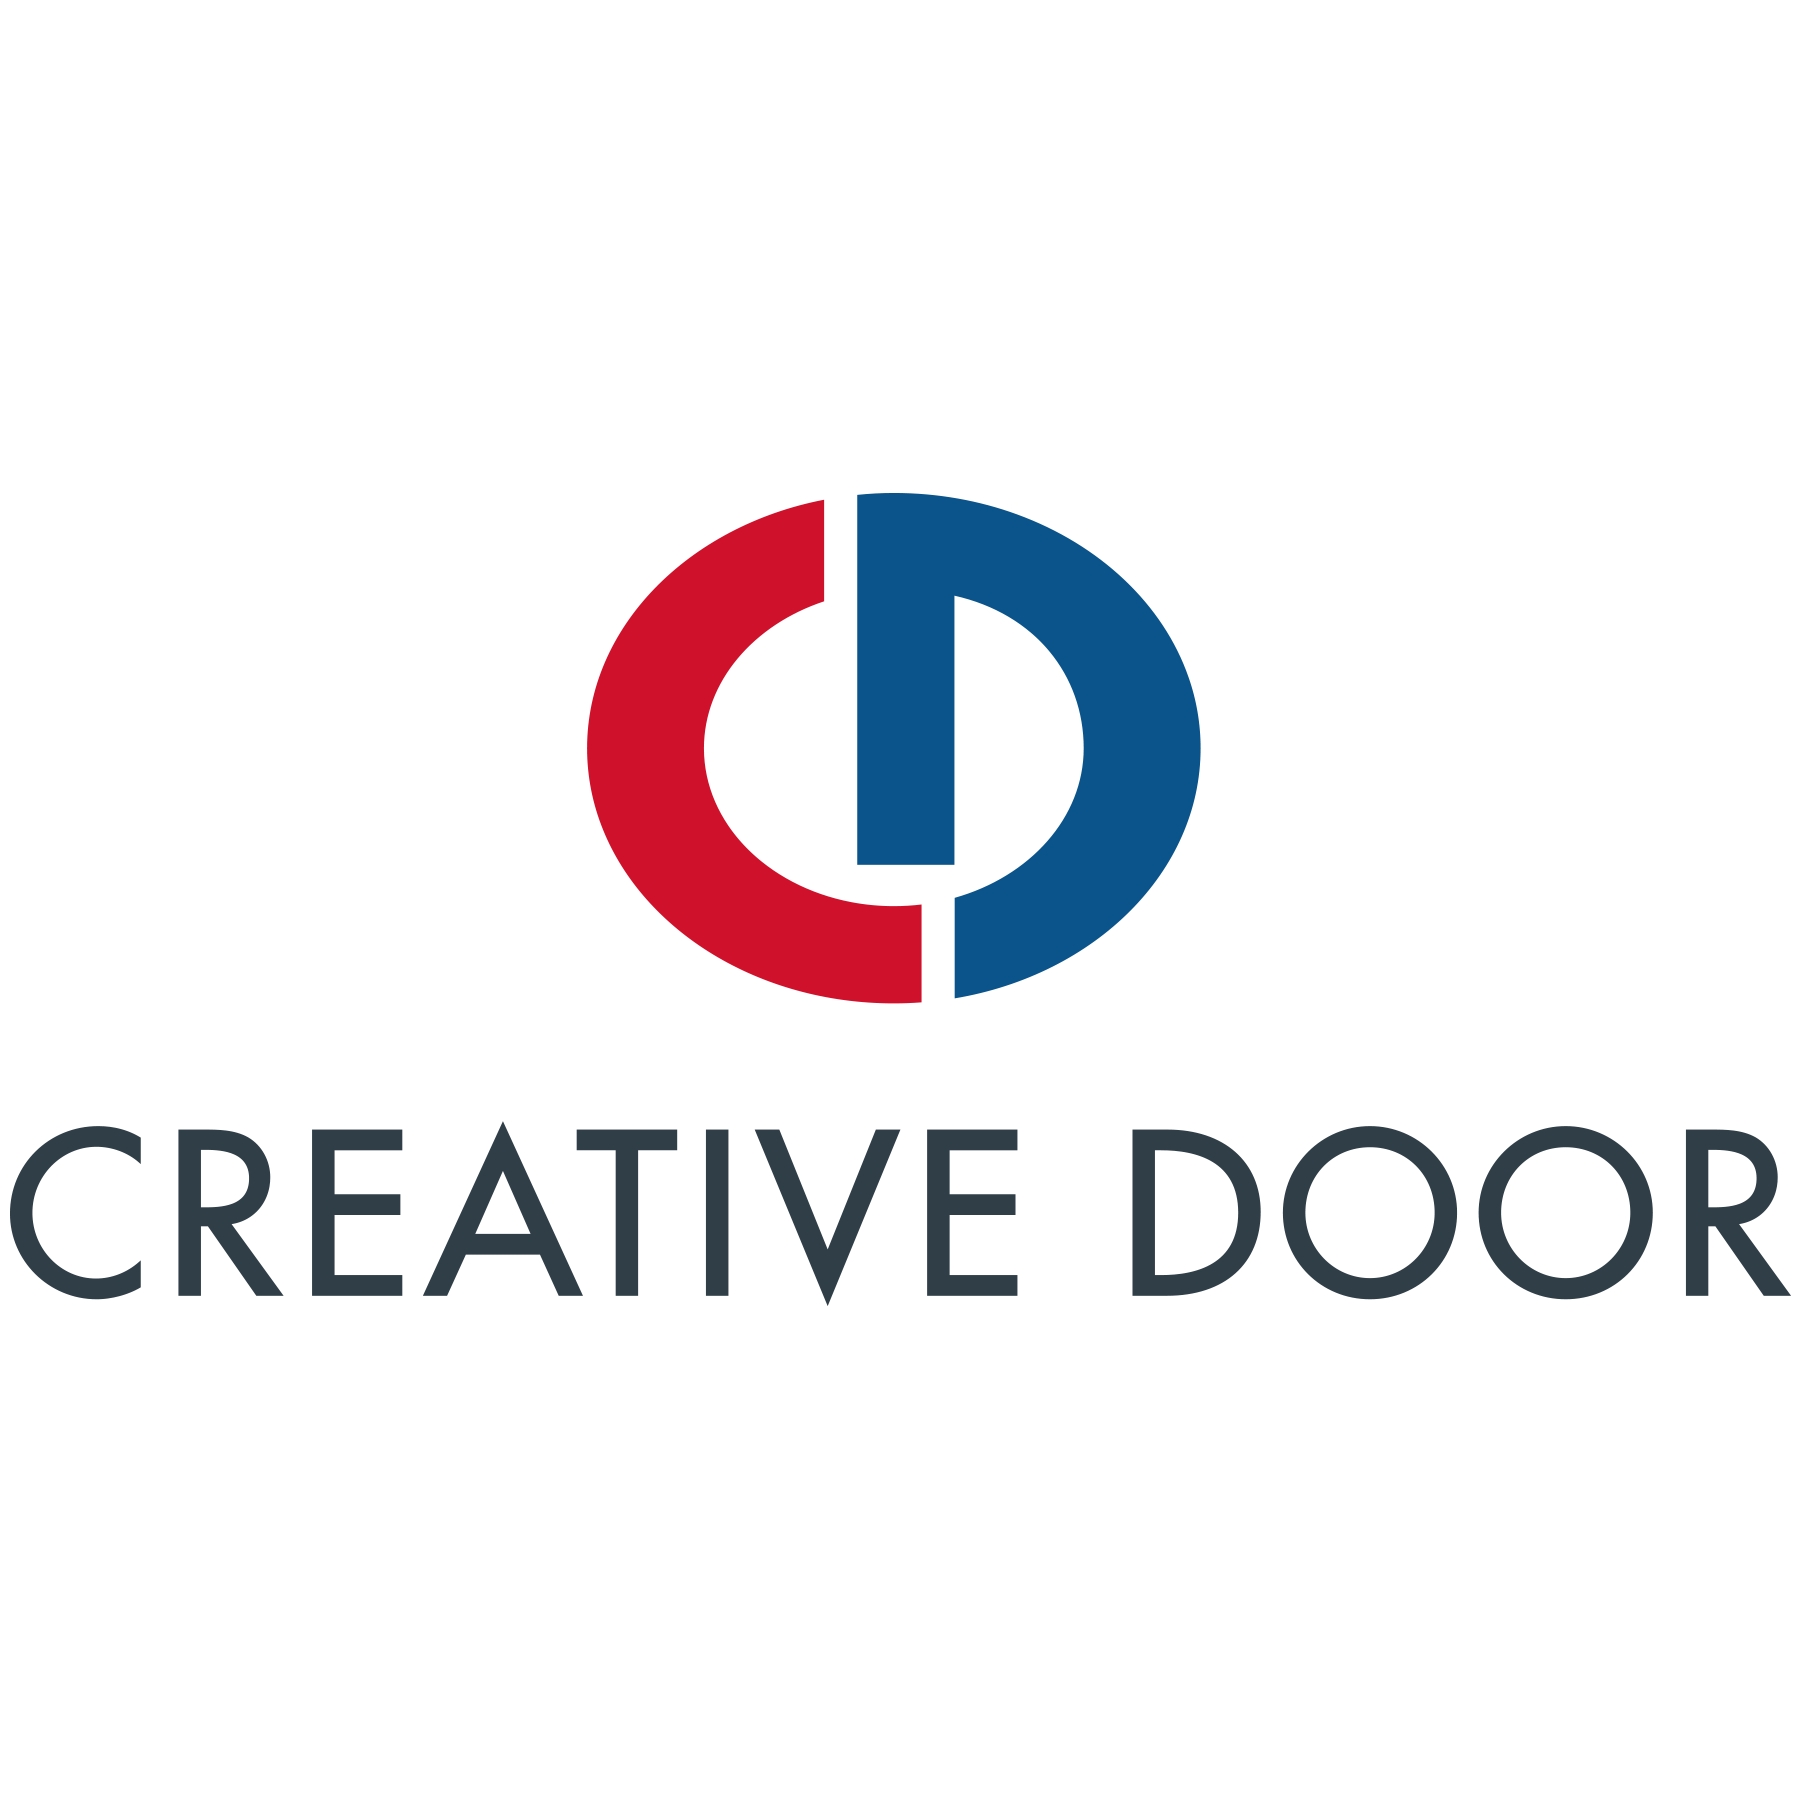 Creative Door - Calgary Garage Door & Overhead Door Specialists